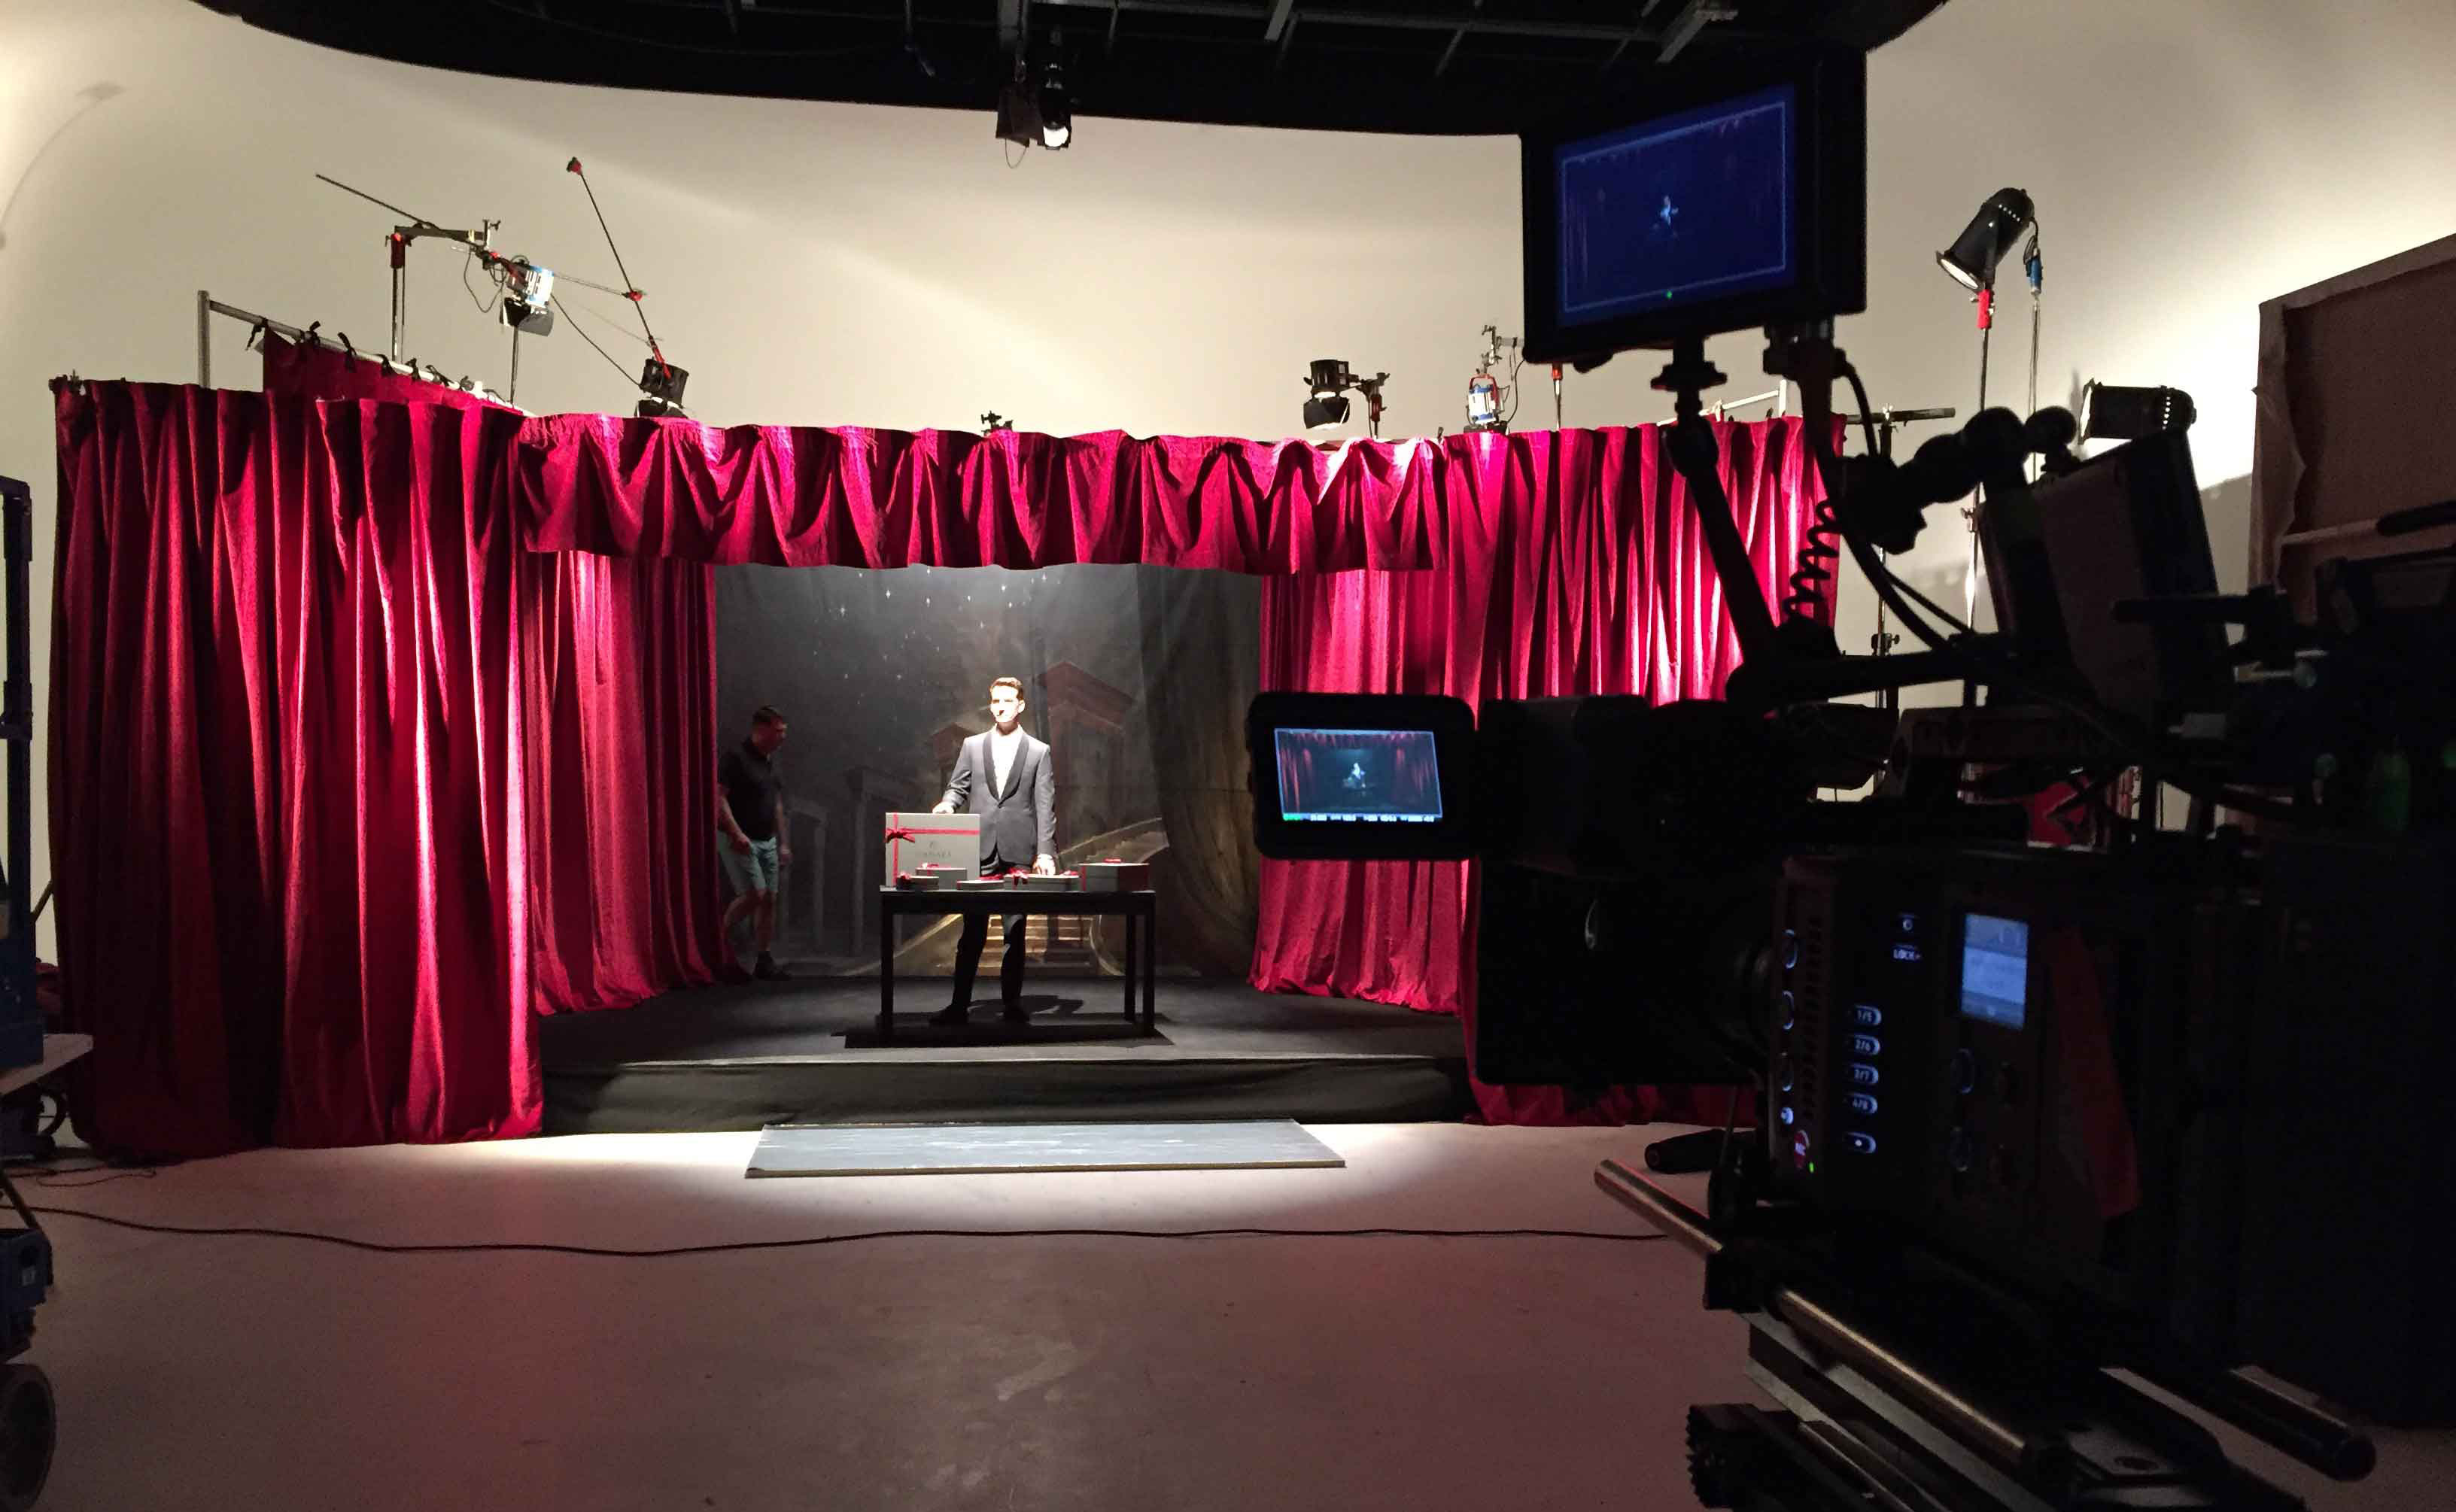 Magic consultant Christopher Howell waits on the sound stage in front of camera for the Canali Commercial.